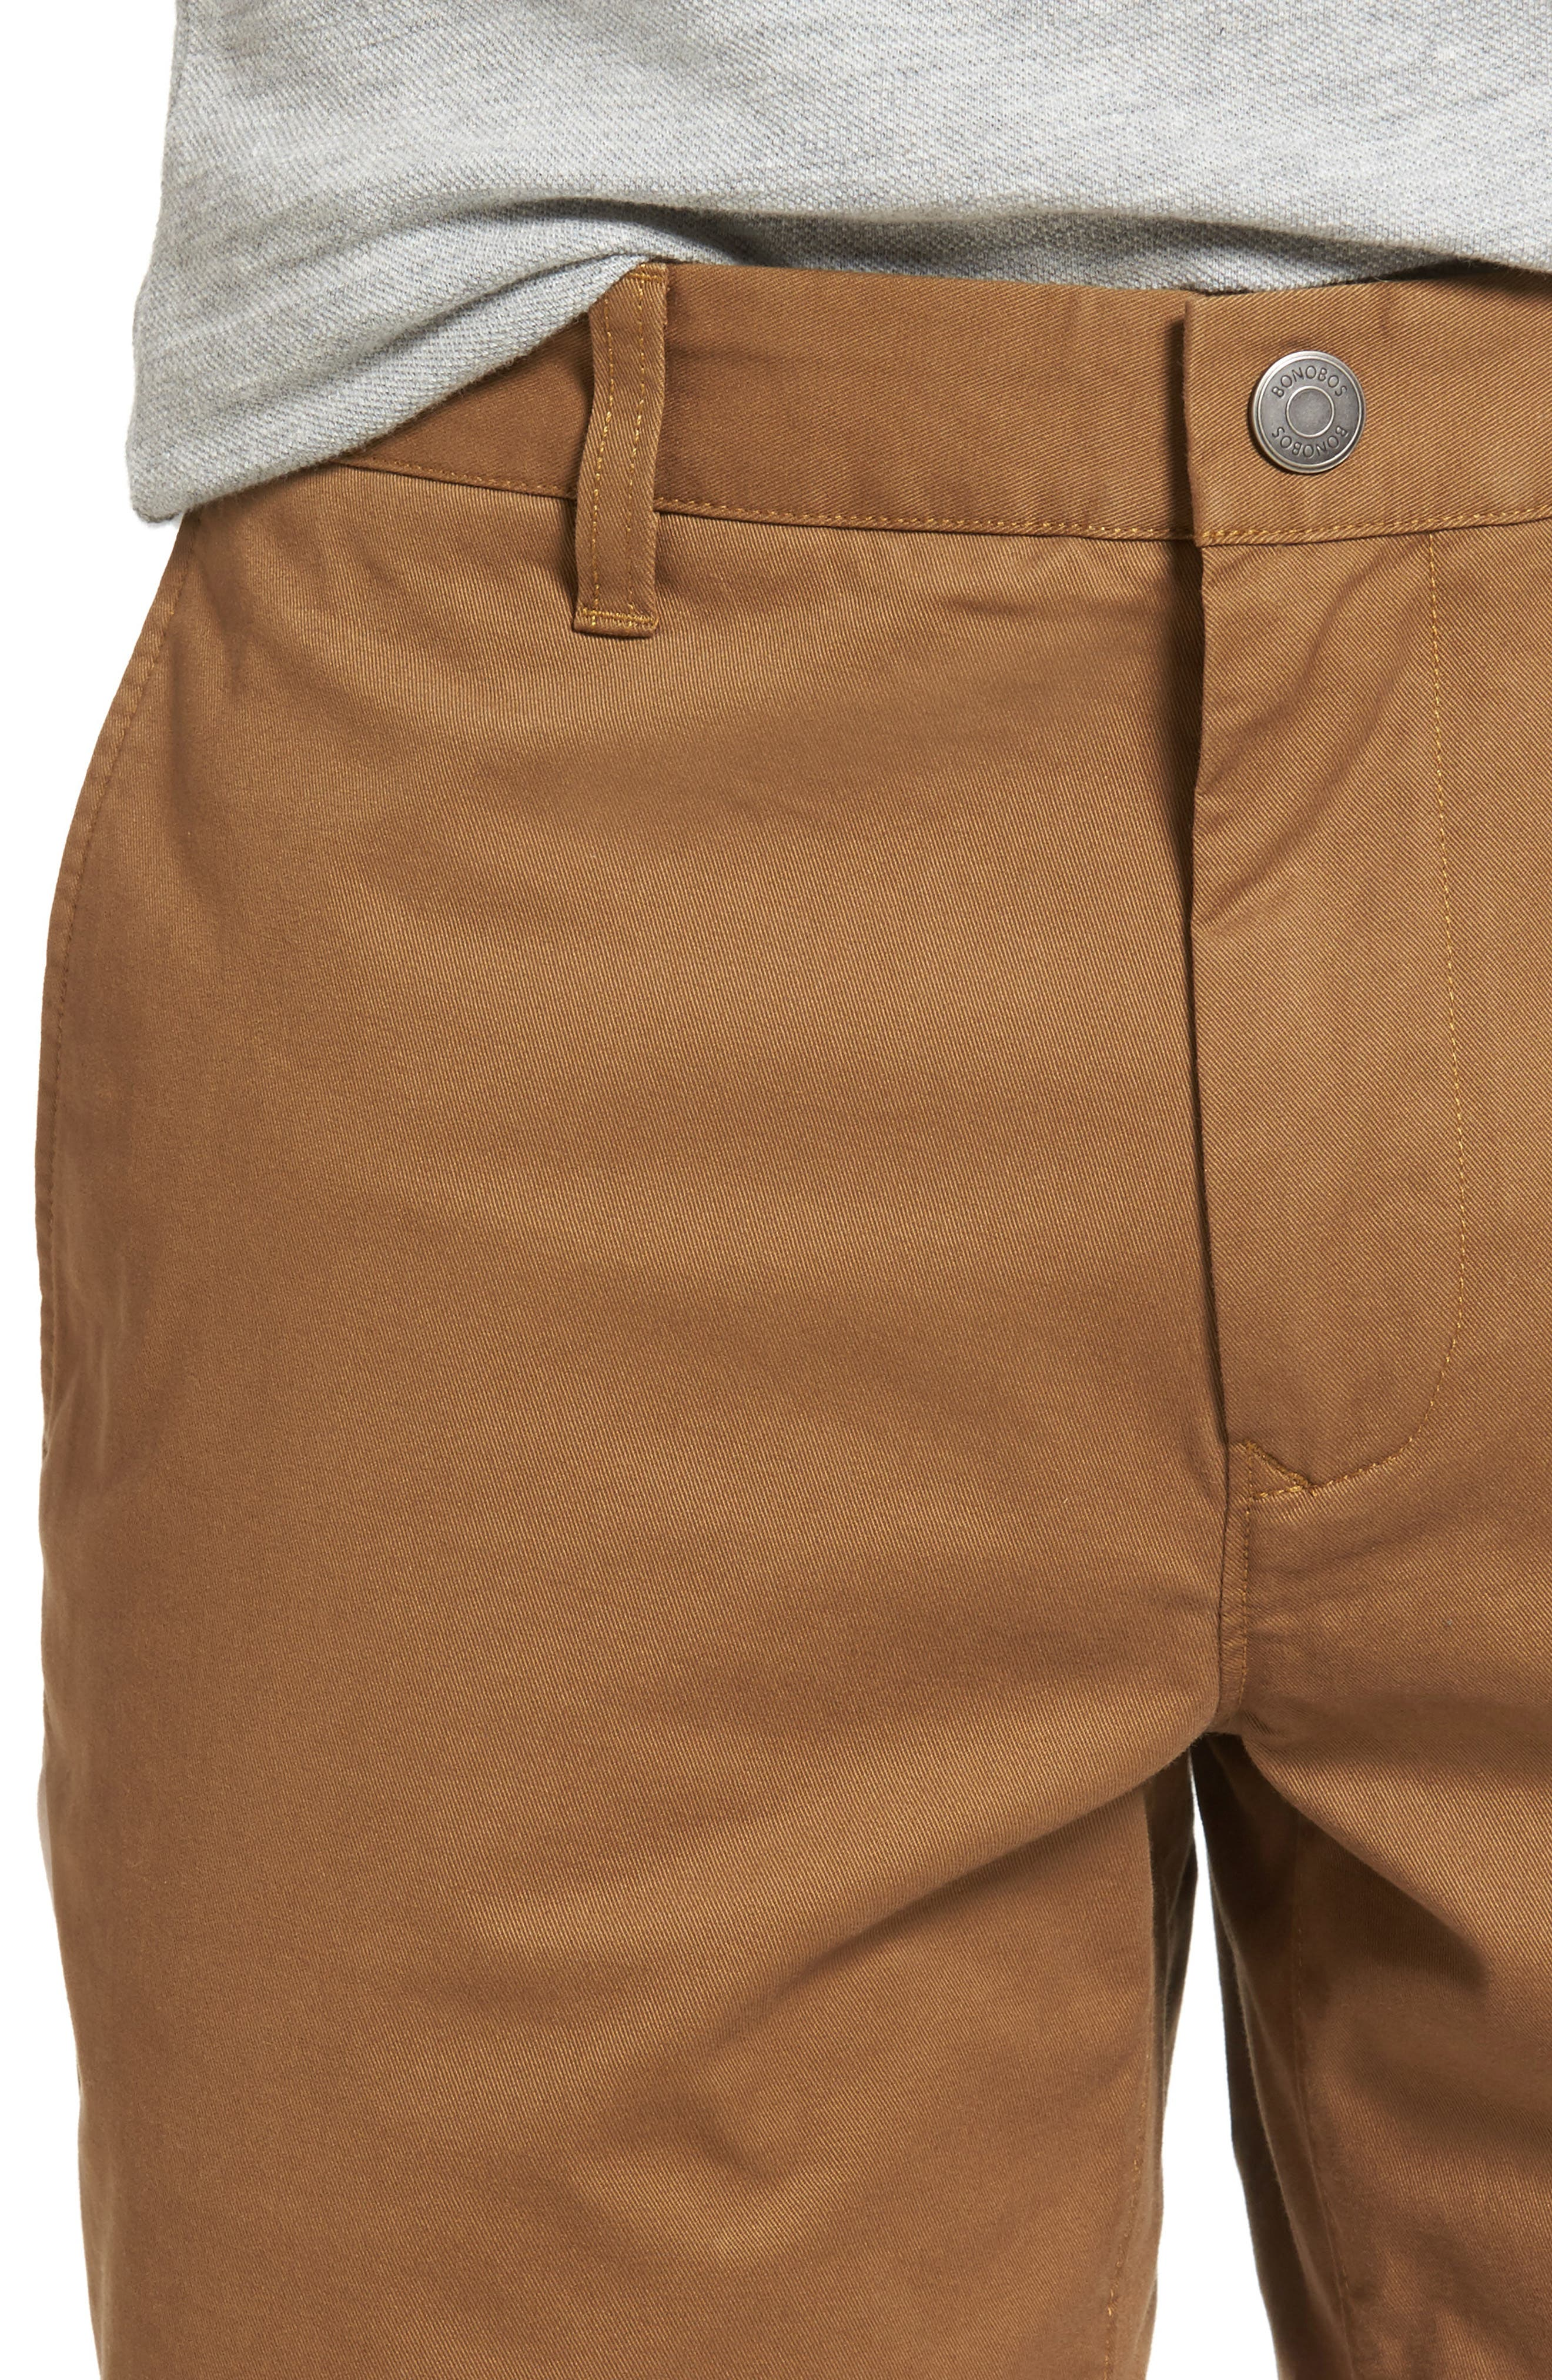 Stretch Washed Chino 5-Inch Shorts,                             Alternate thumbnail 107, color,